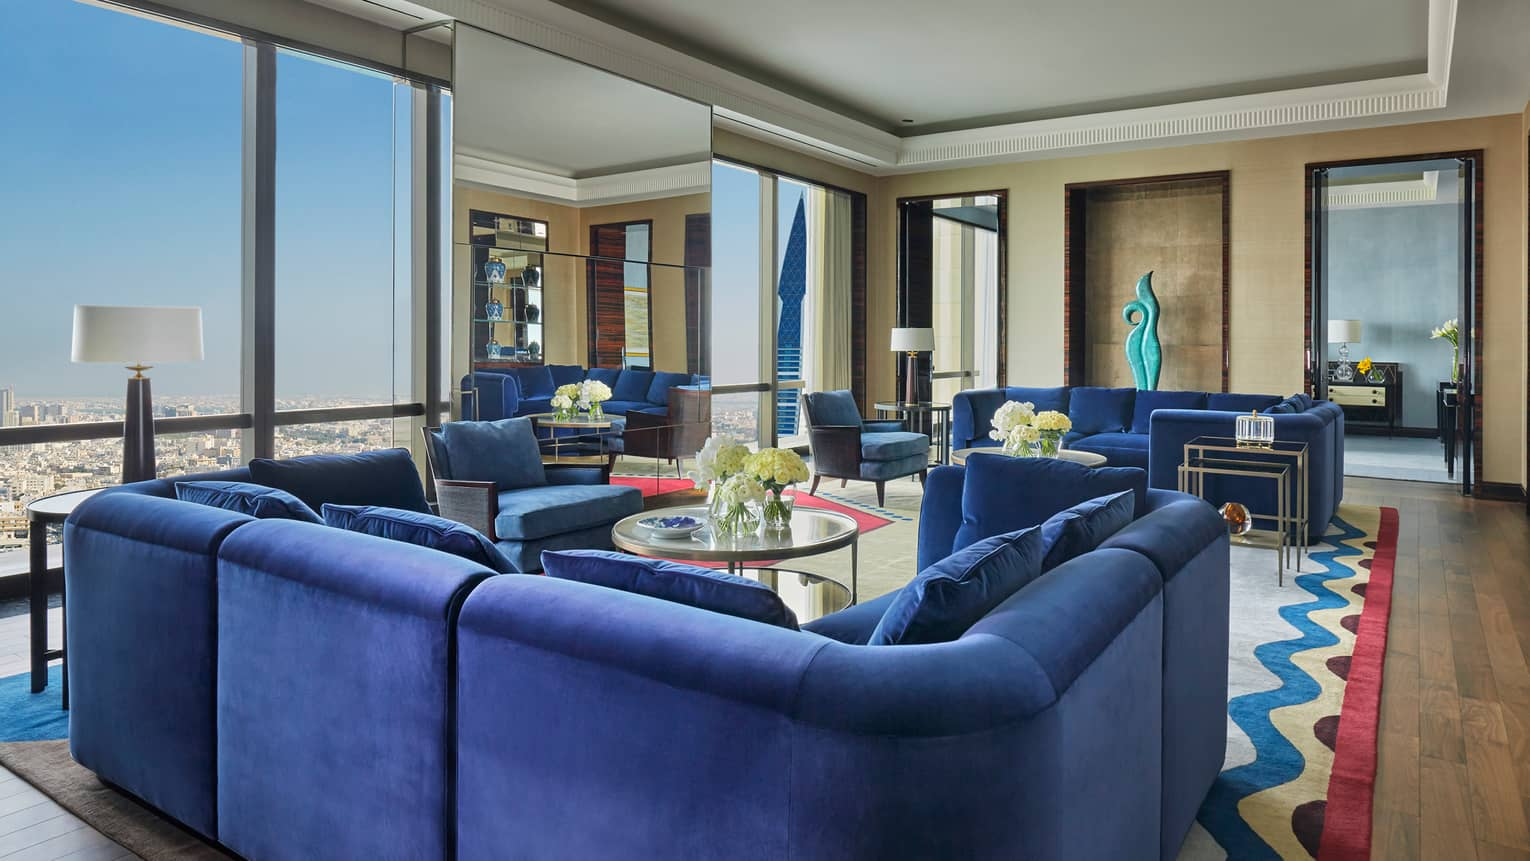 Royal Suite large u-shaped blue plush sofa, multiple seating areas, window with Bahrain city views